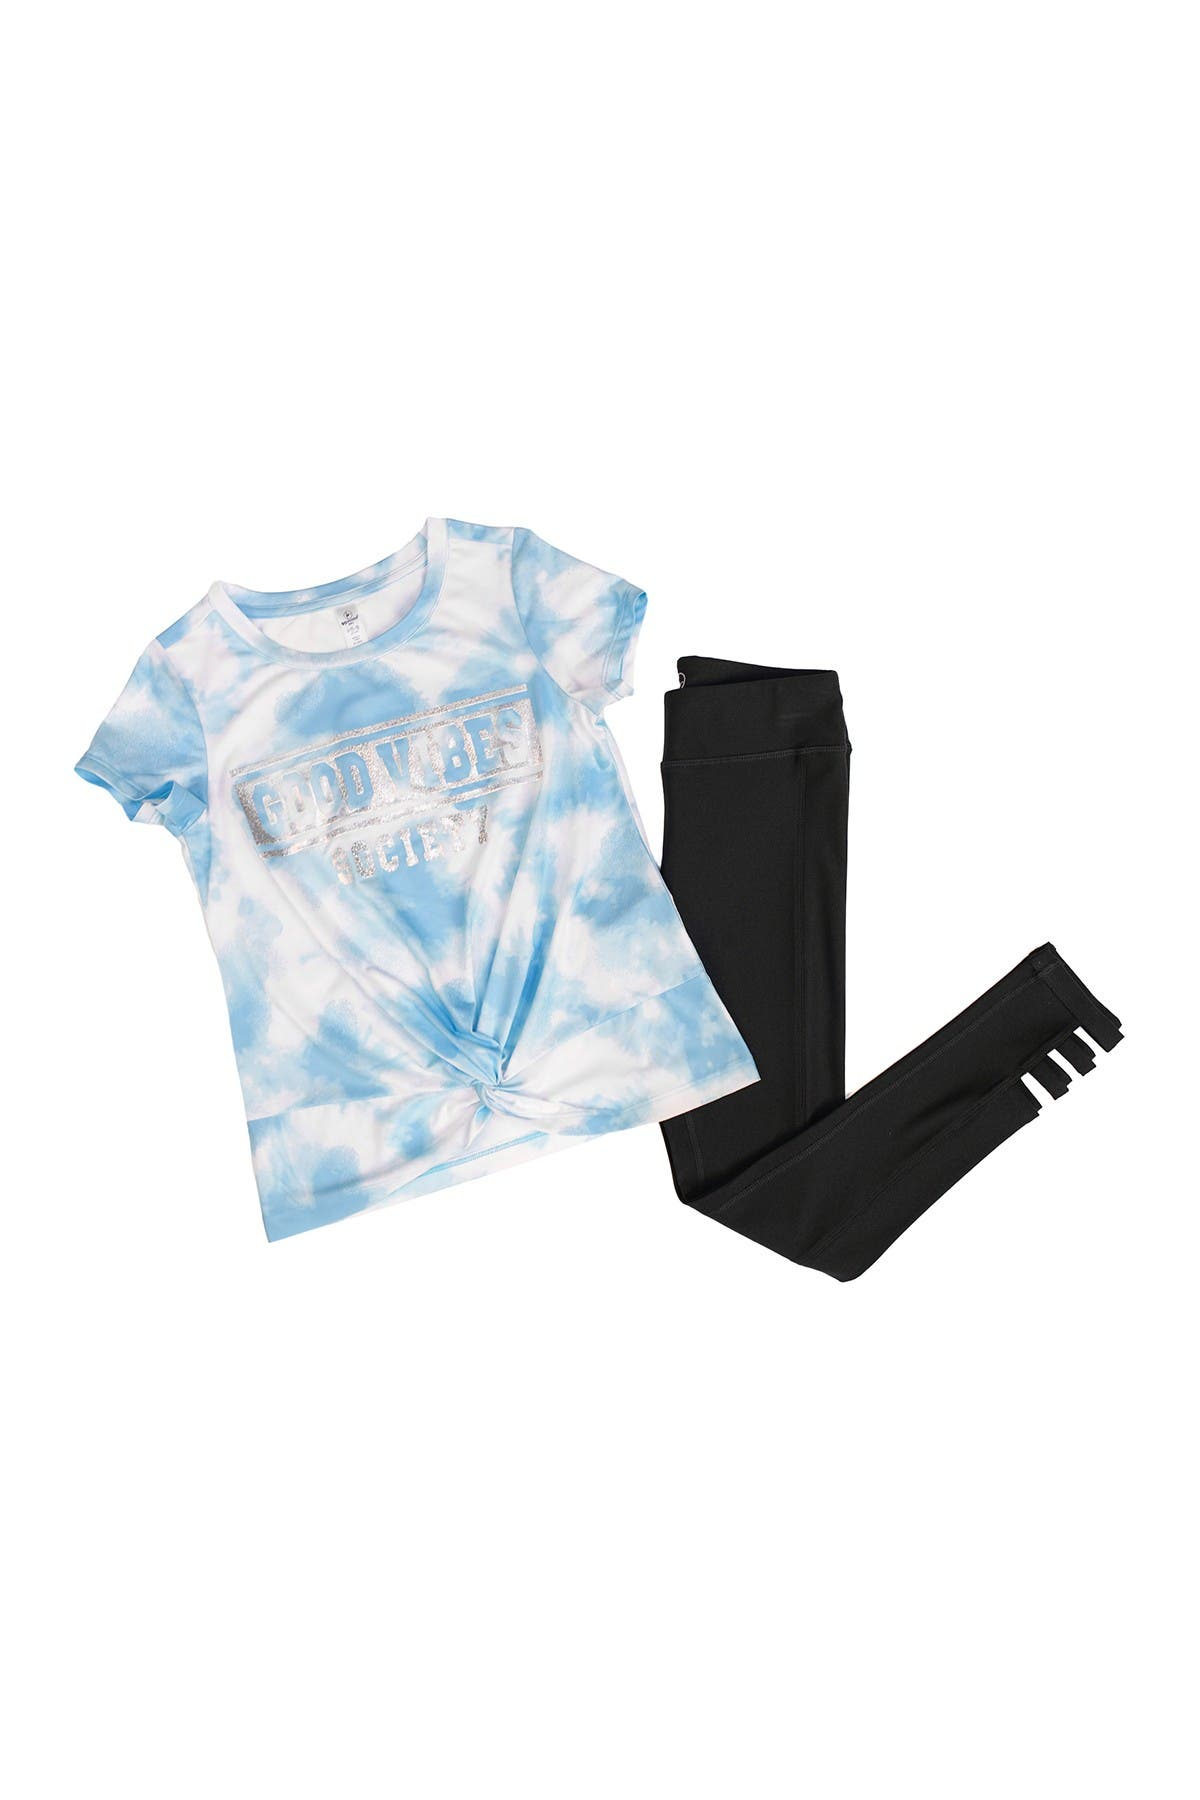 Image of 90 Degree By Reflex Twist Front Short Sleeve Top & Cut Out Legging Set